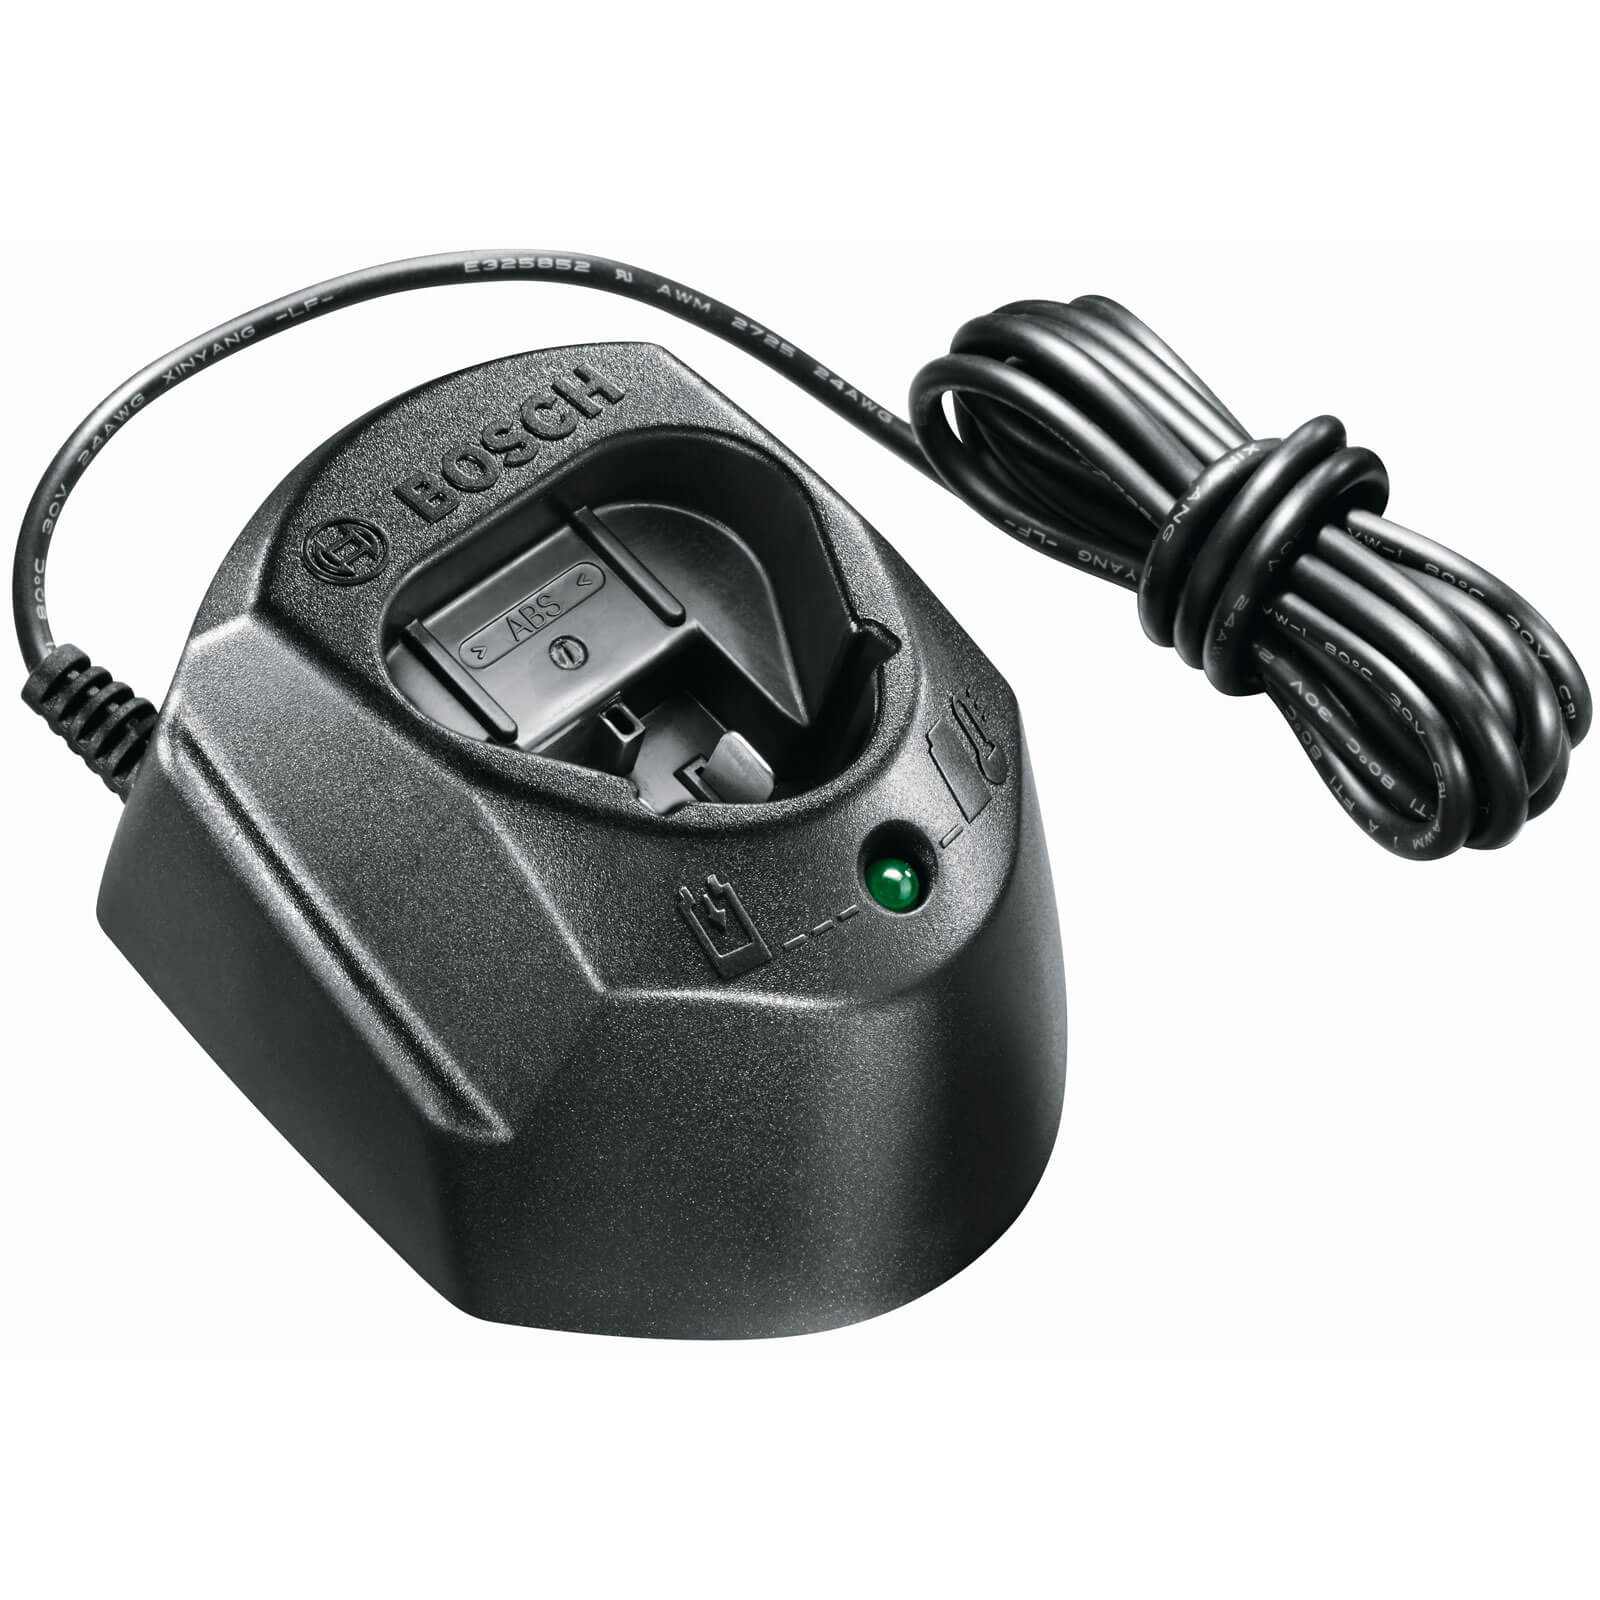 zzz bosch power4all al 1110 cv 10 8v    12v cordless li